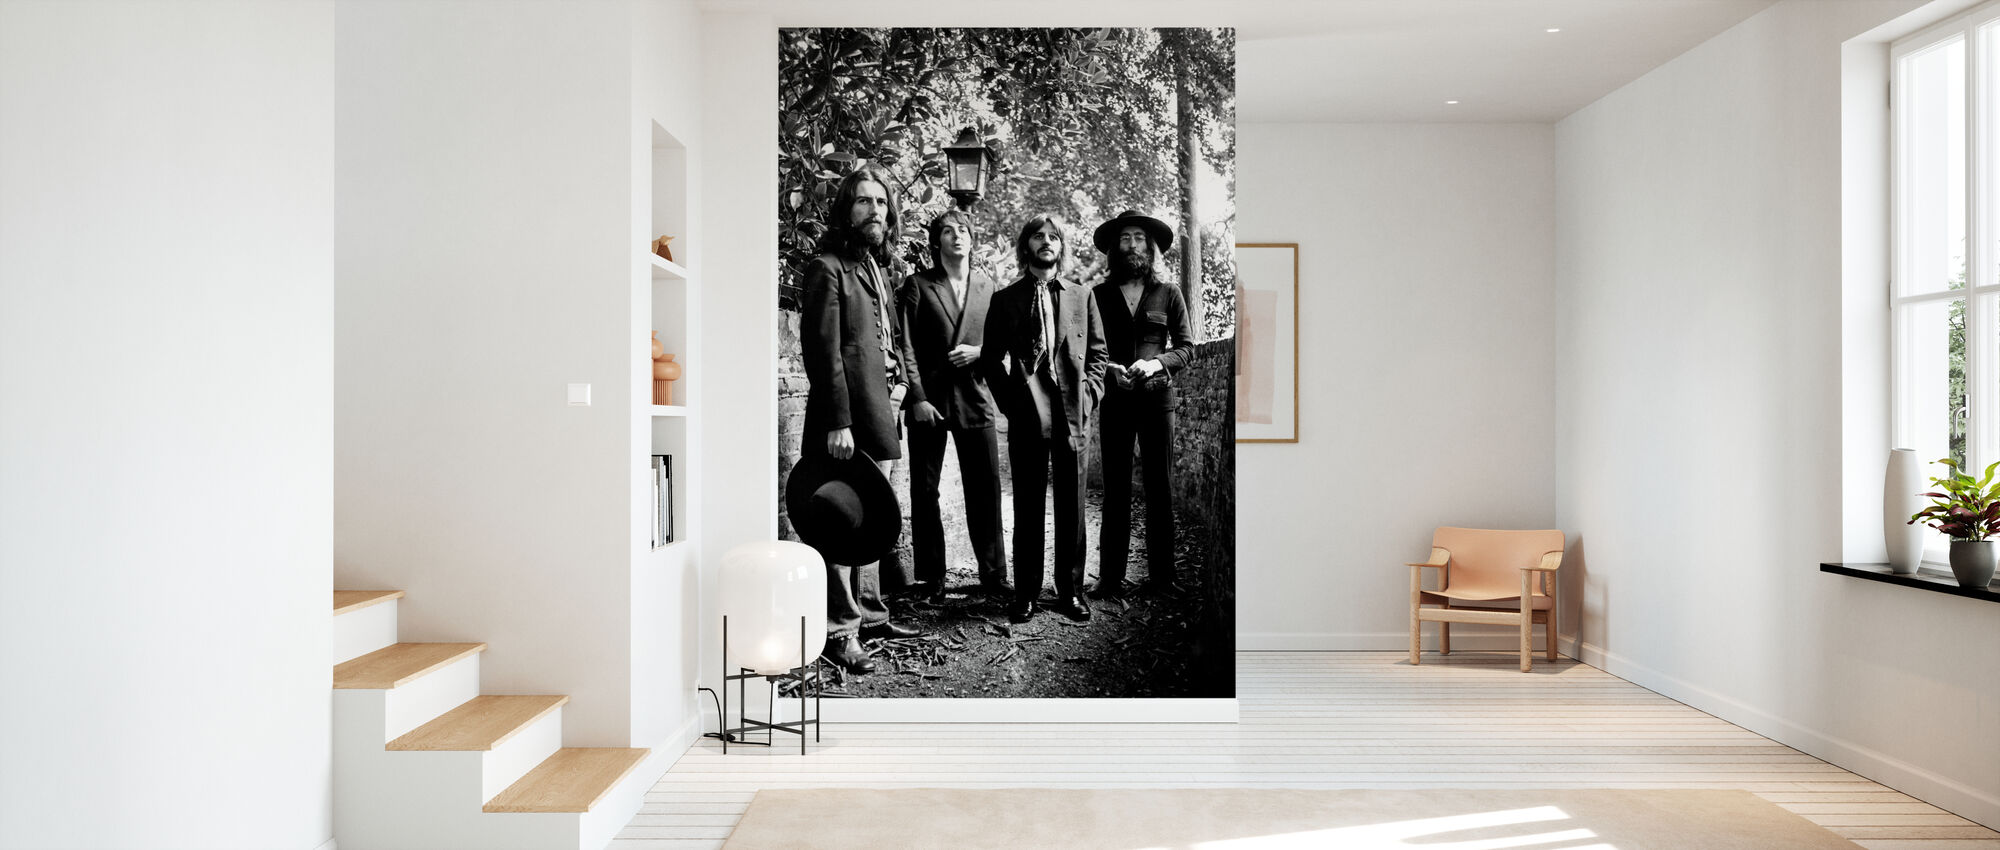 De Beatles - Laatste fotosessie 1969 - Behang - Gang